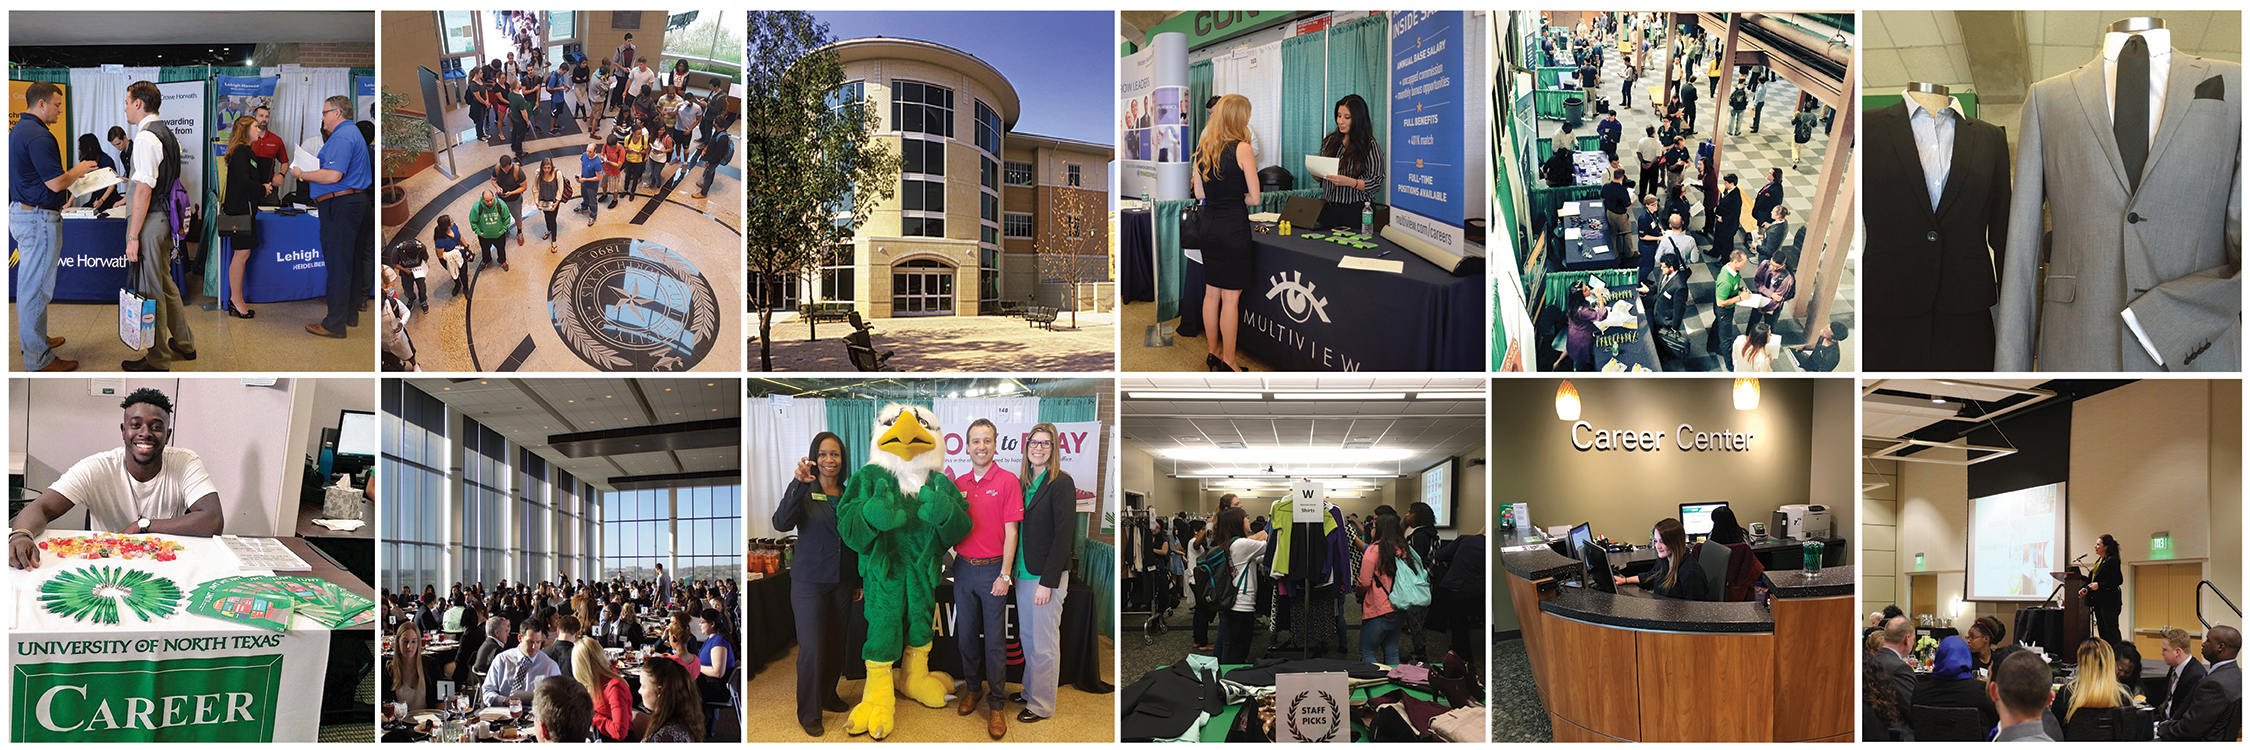 Career Fair & Expo images